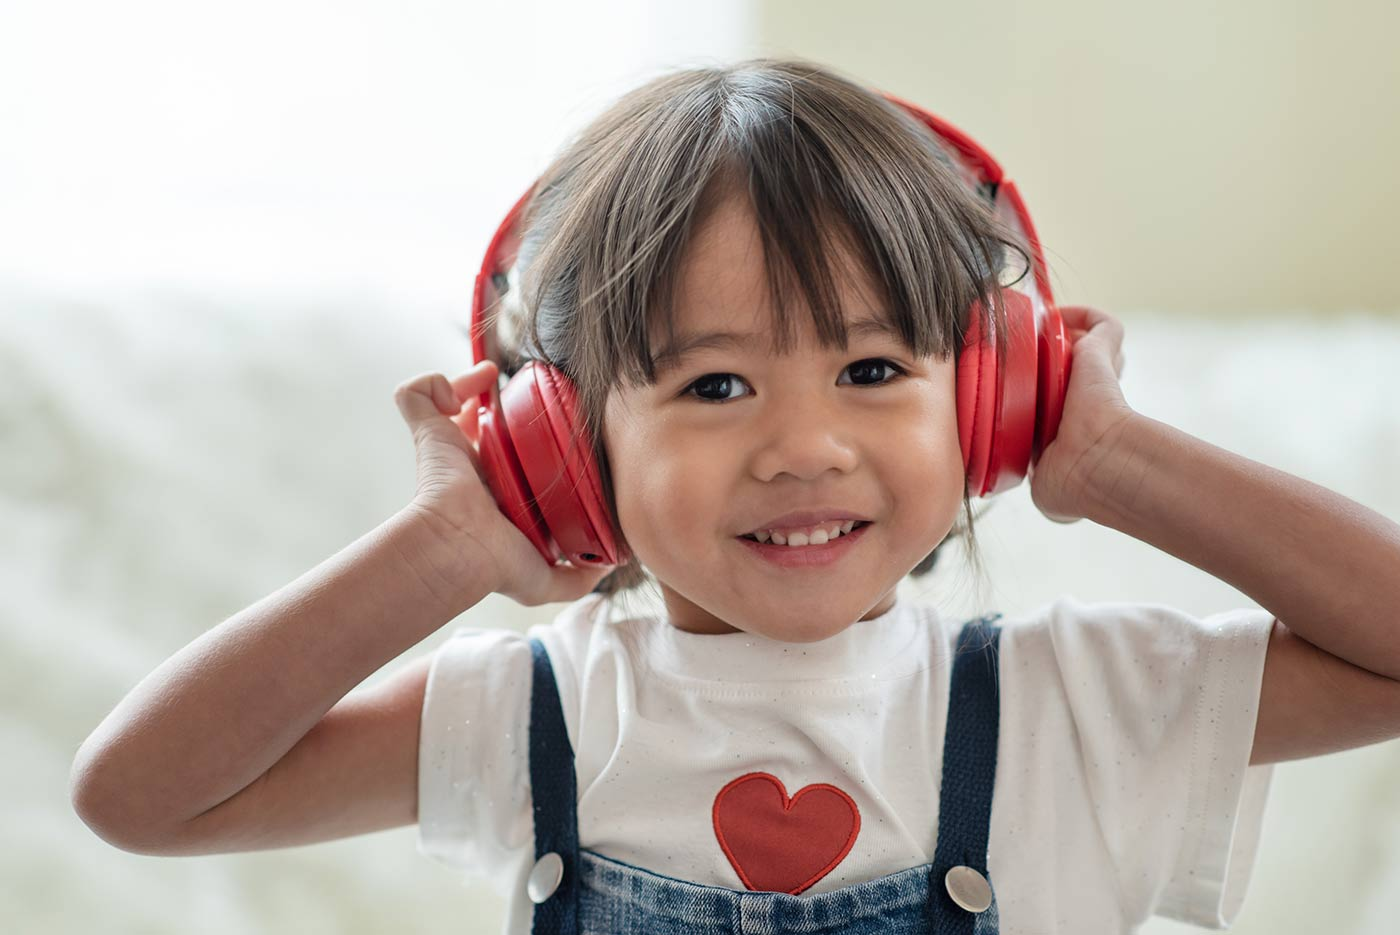 Happy child listening to music on headphones